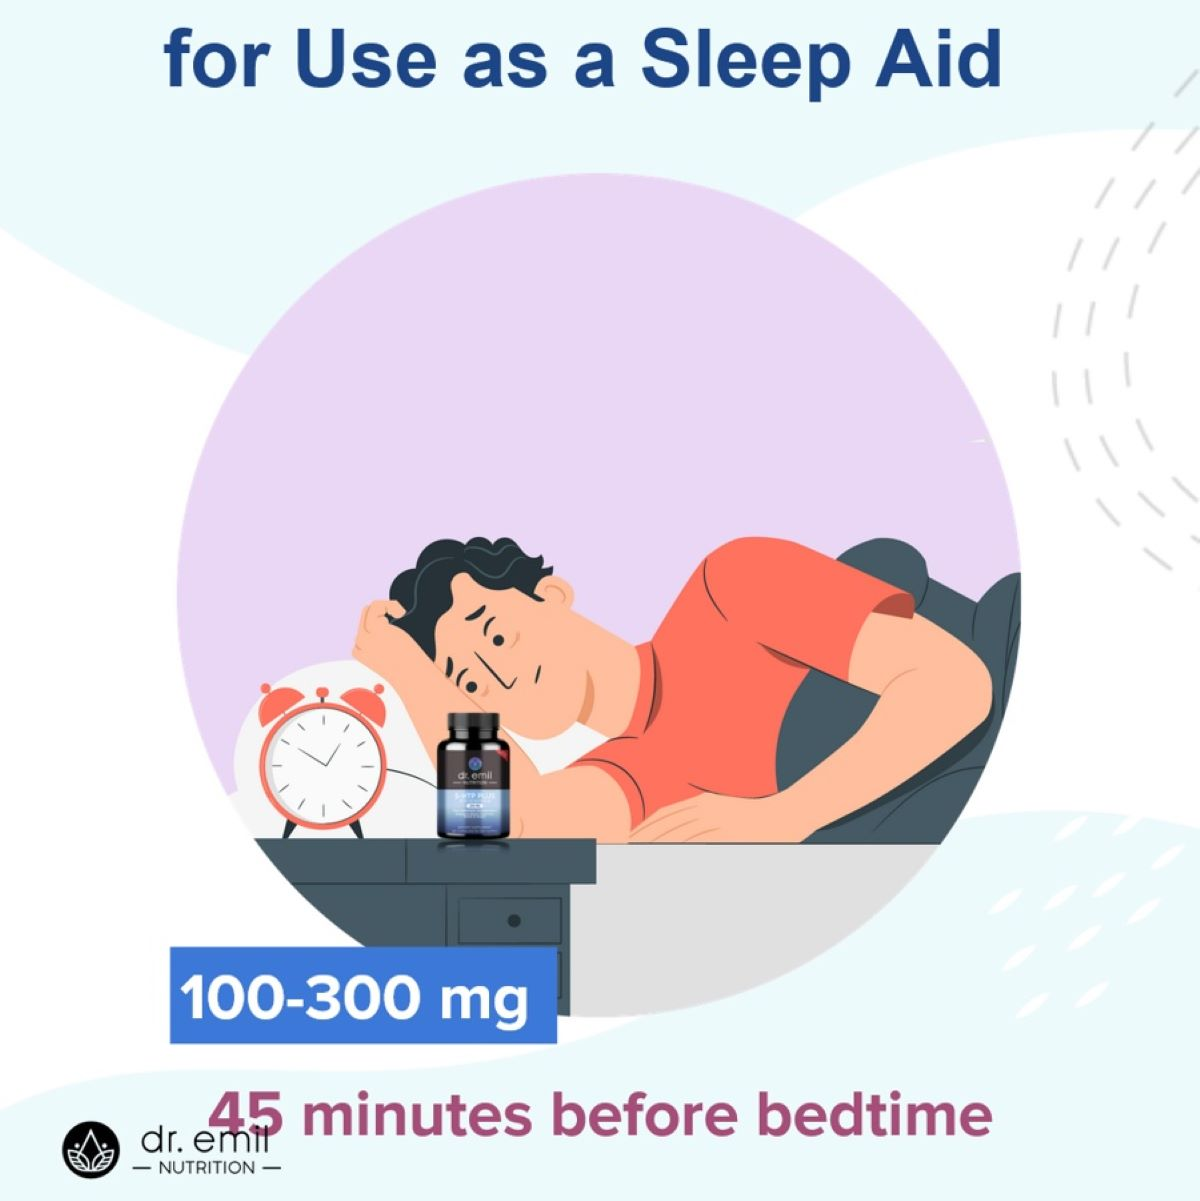 When using 5-HTP as a sleep aid, take between 100 and 300 mg aorund 45 minutes before bedtime